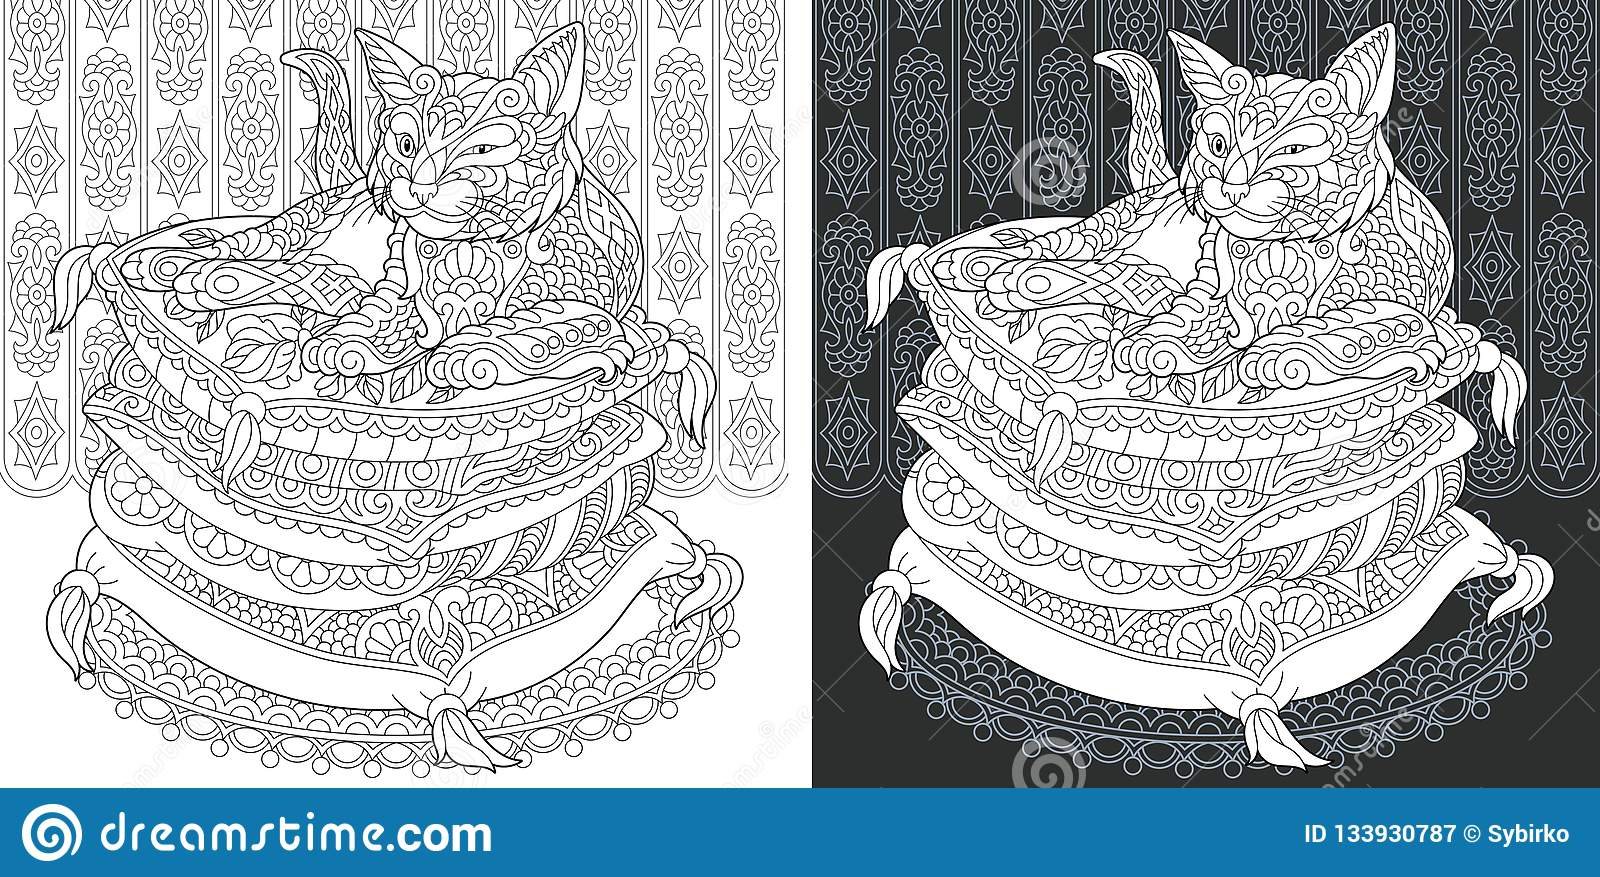 Coloring book page with cat